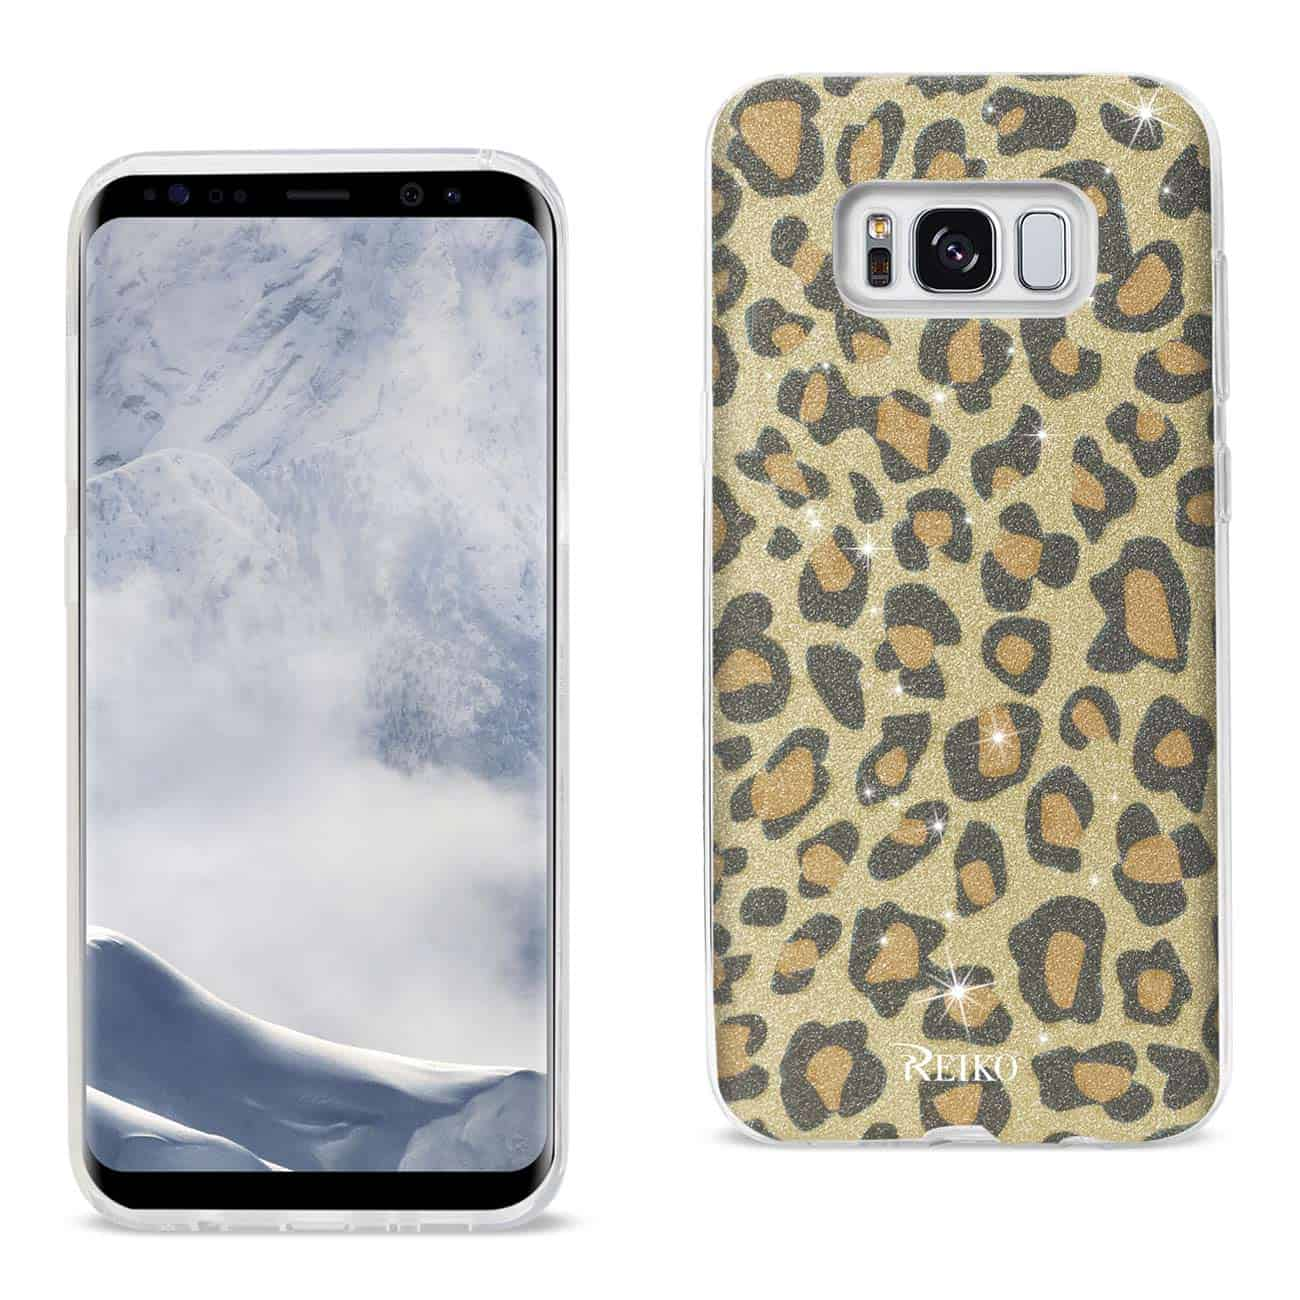 SAMSUNG GALAXY S8 EDGE/ S8 PLUS SHINE GLITTER SHIMMER HYBRID CASE IN LEOPARD GOLD